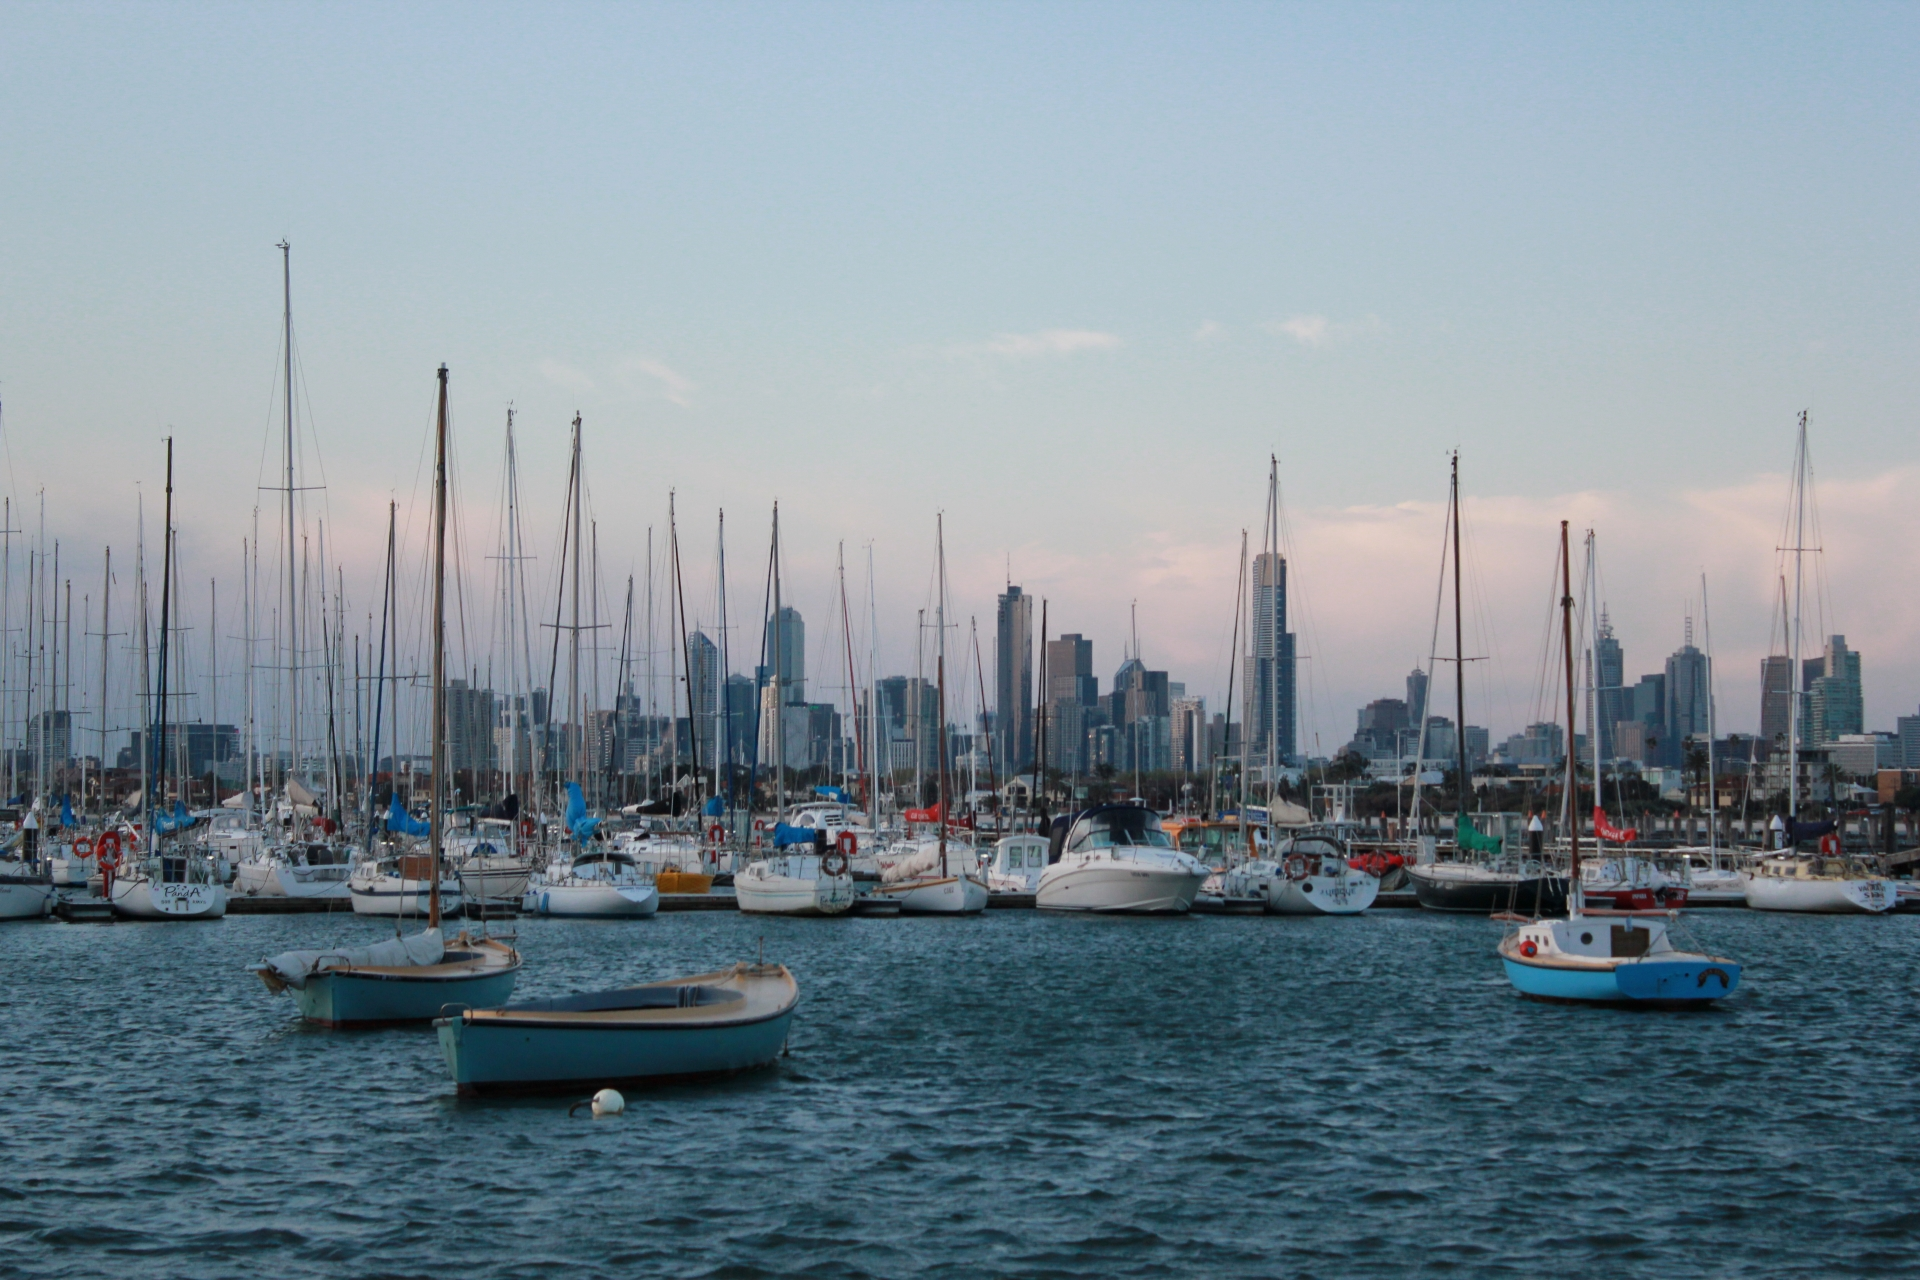 Boats lined up at St Kilda pier at sunset